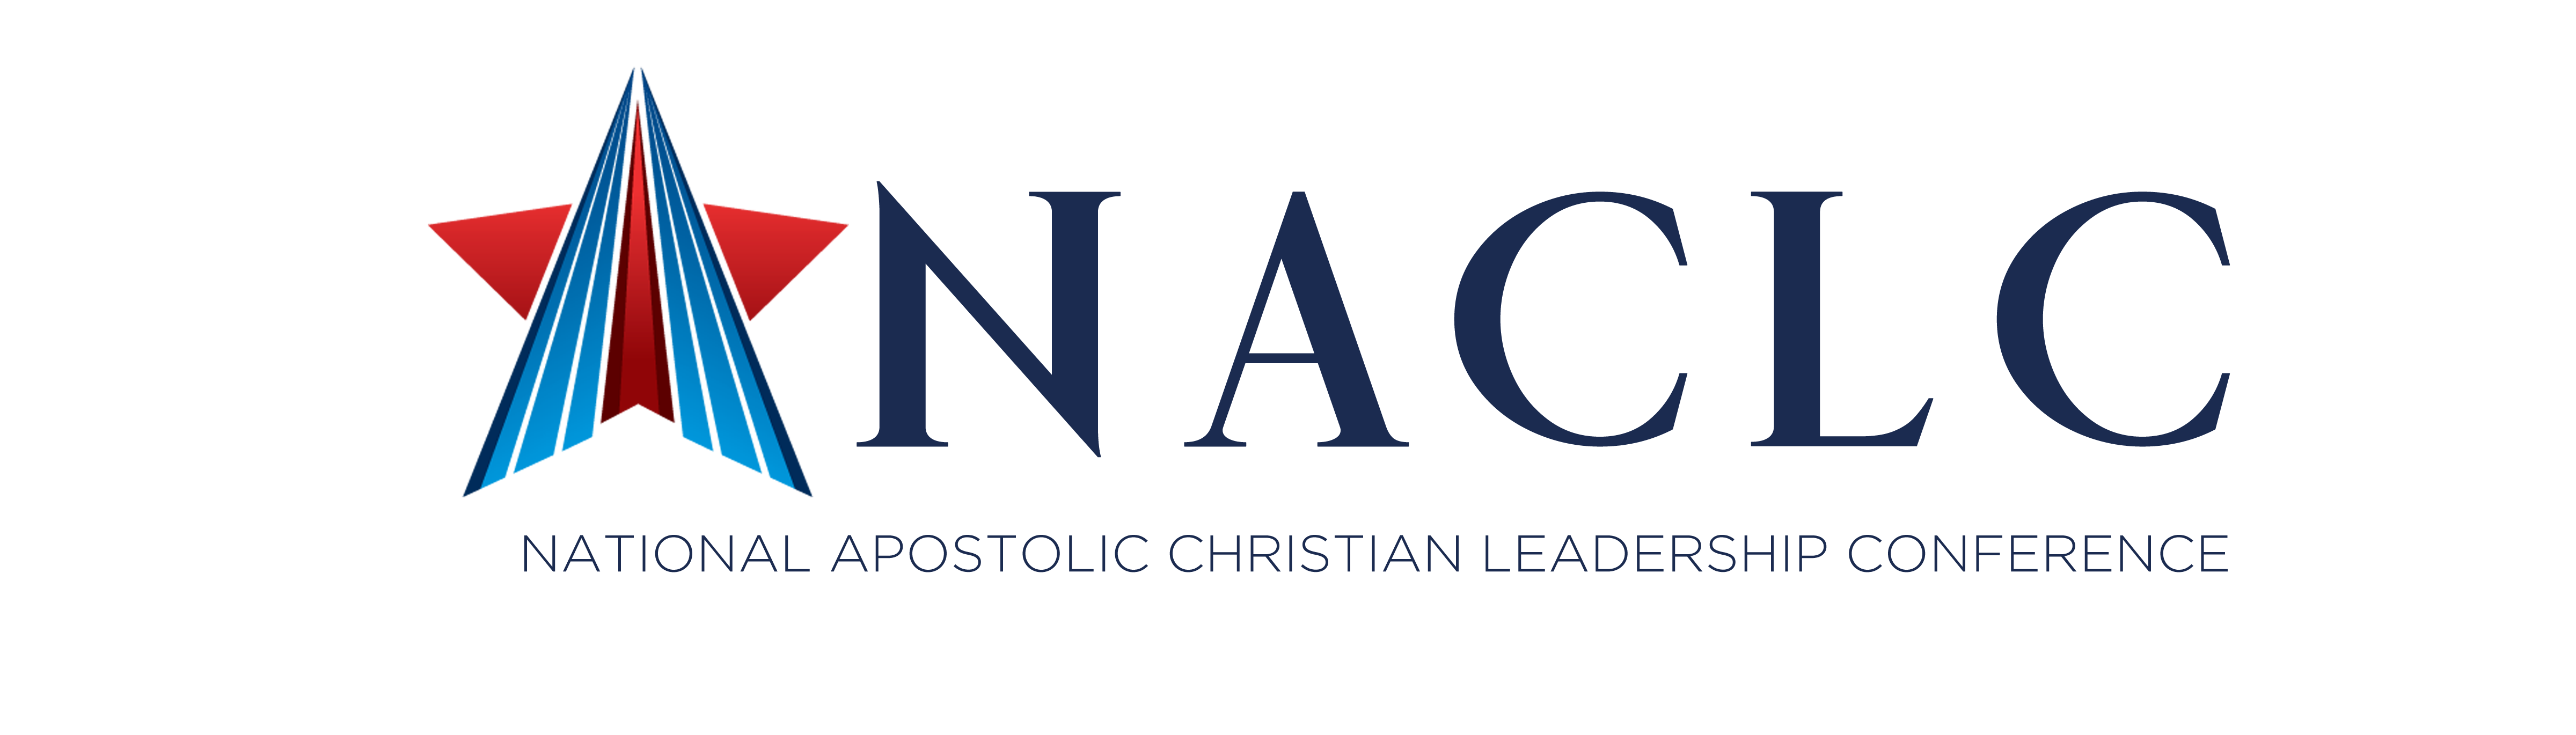 NACLC Organization Monthly Membership ($5-7M)